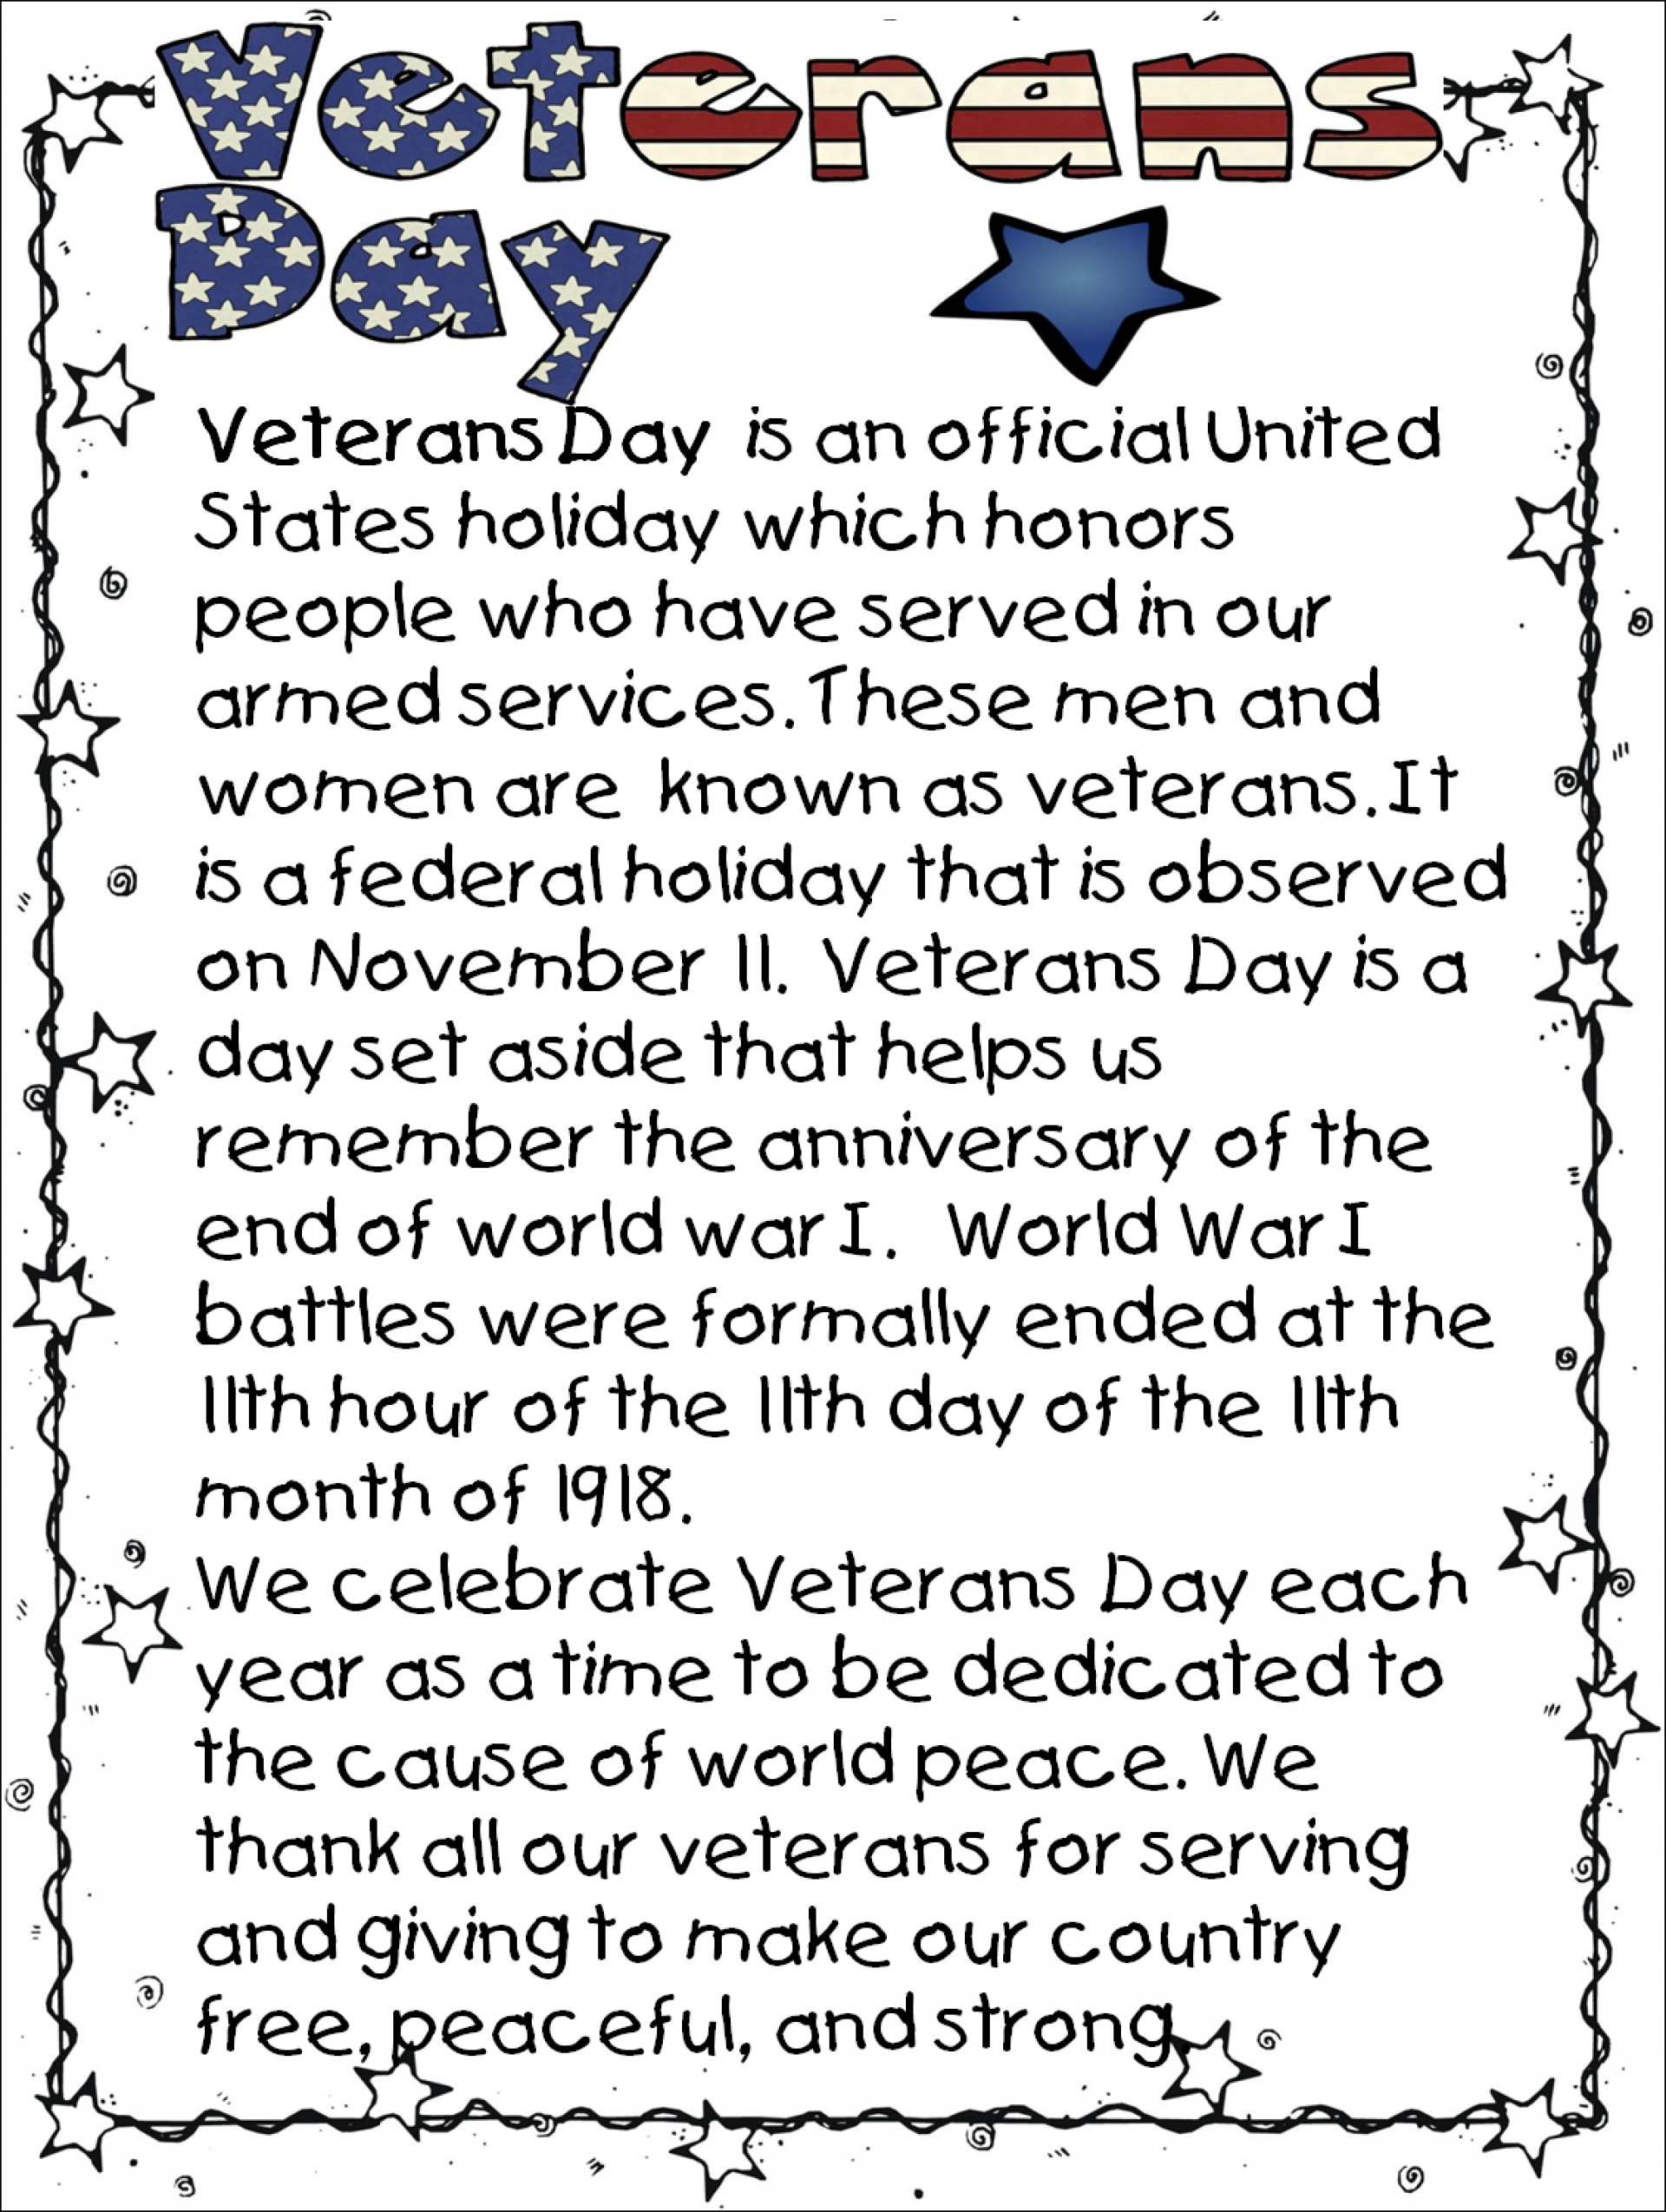 007 Veterans Day Essay Example Best Contest Ideas Titles 1920